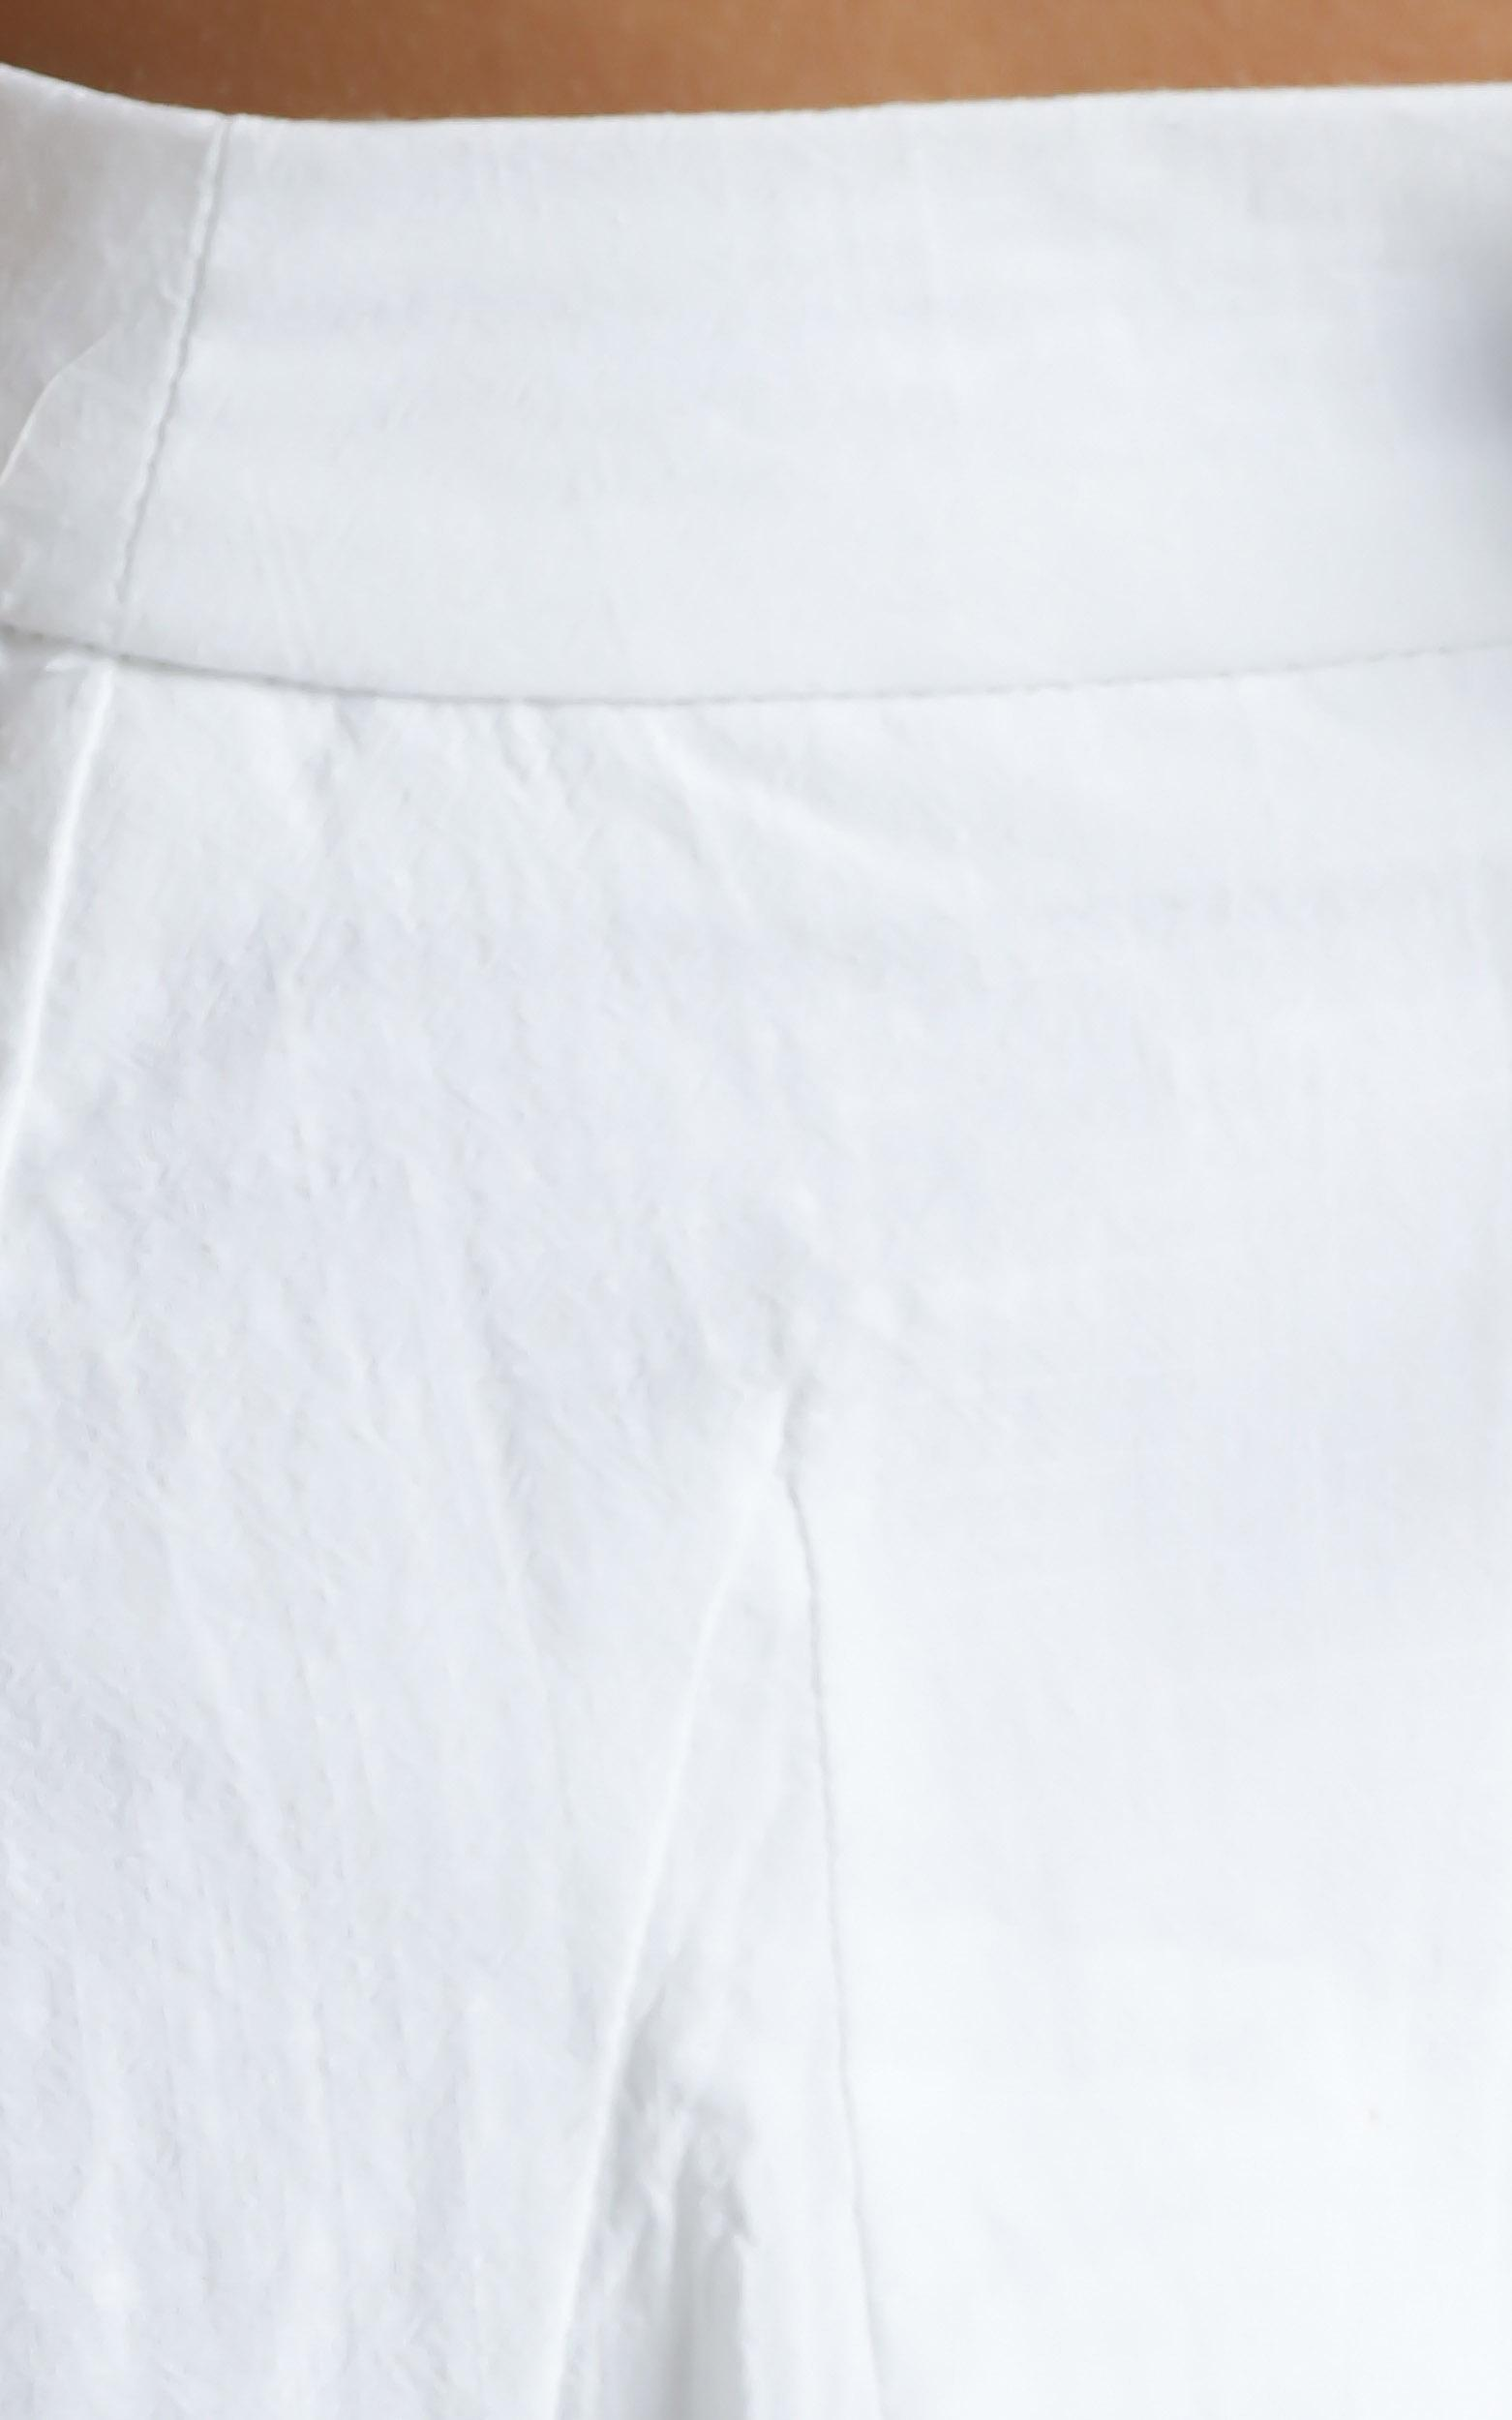 Hilda Shorts in White - 6 (XS), White, hi-res image number null